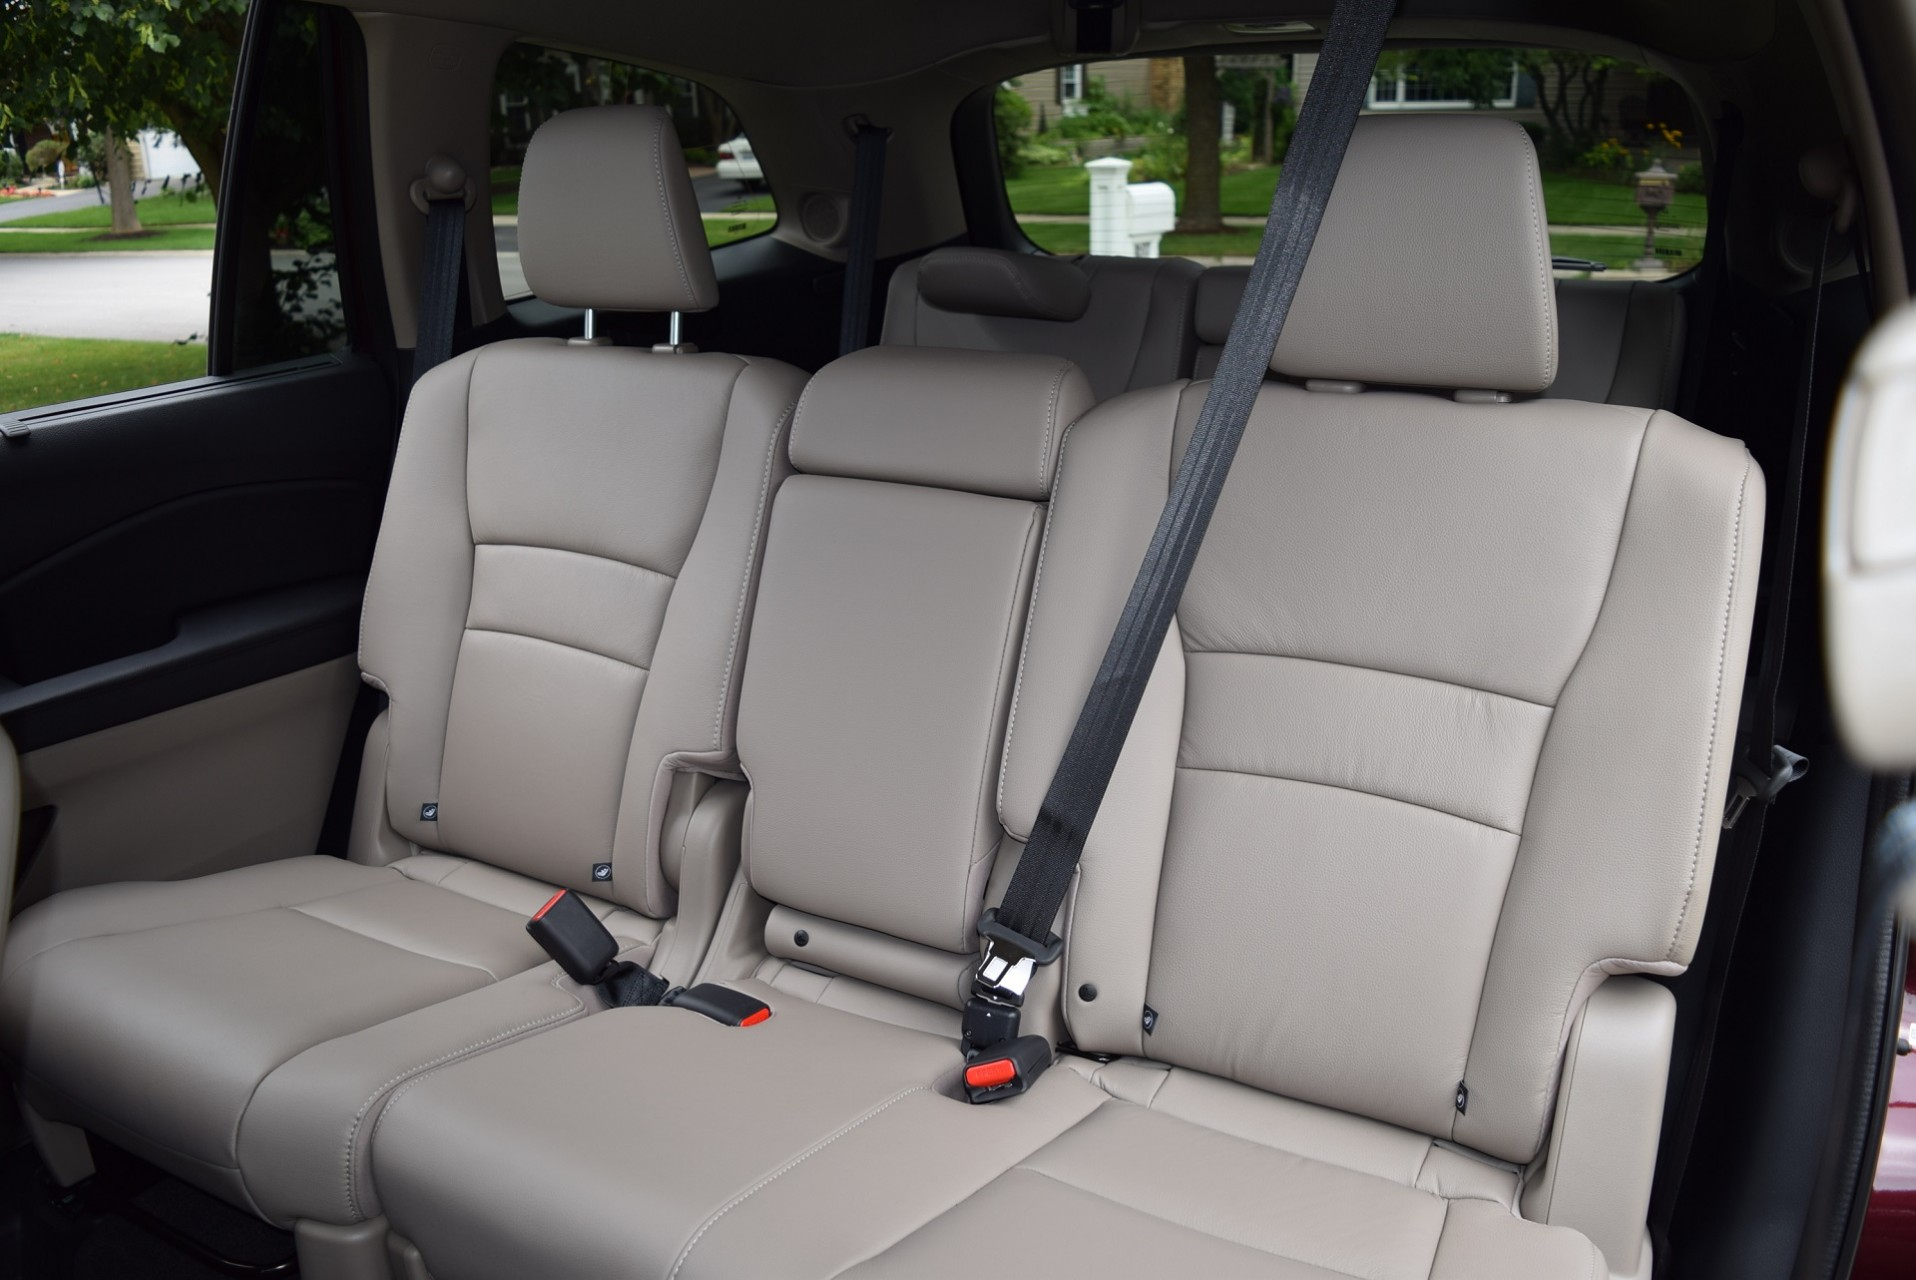 Toyota Highlander Captains Chairs 2017 Toyota Highlander Seating Capacity 8 Best New Cars